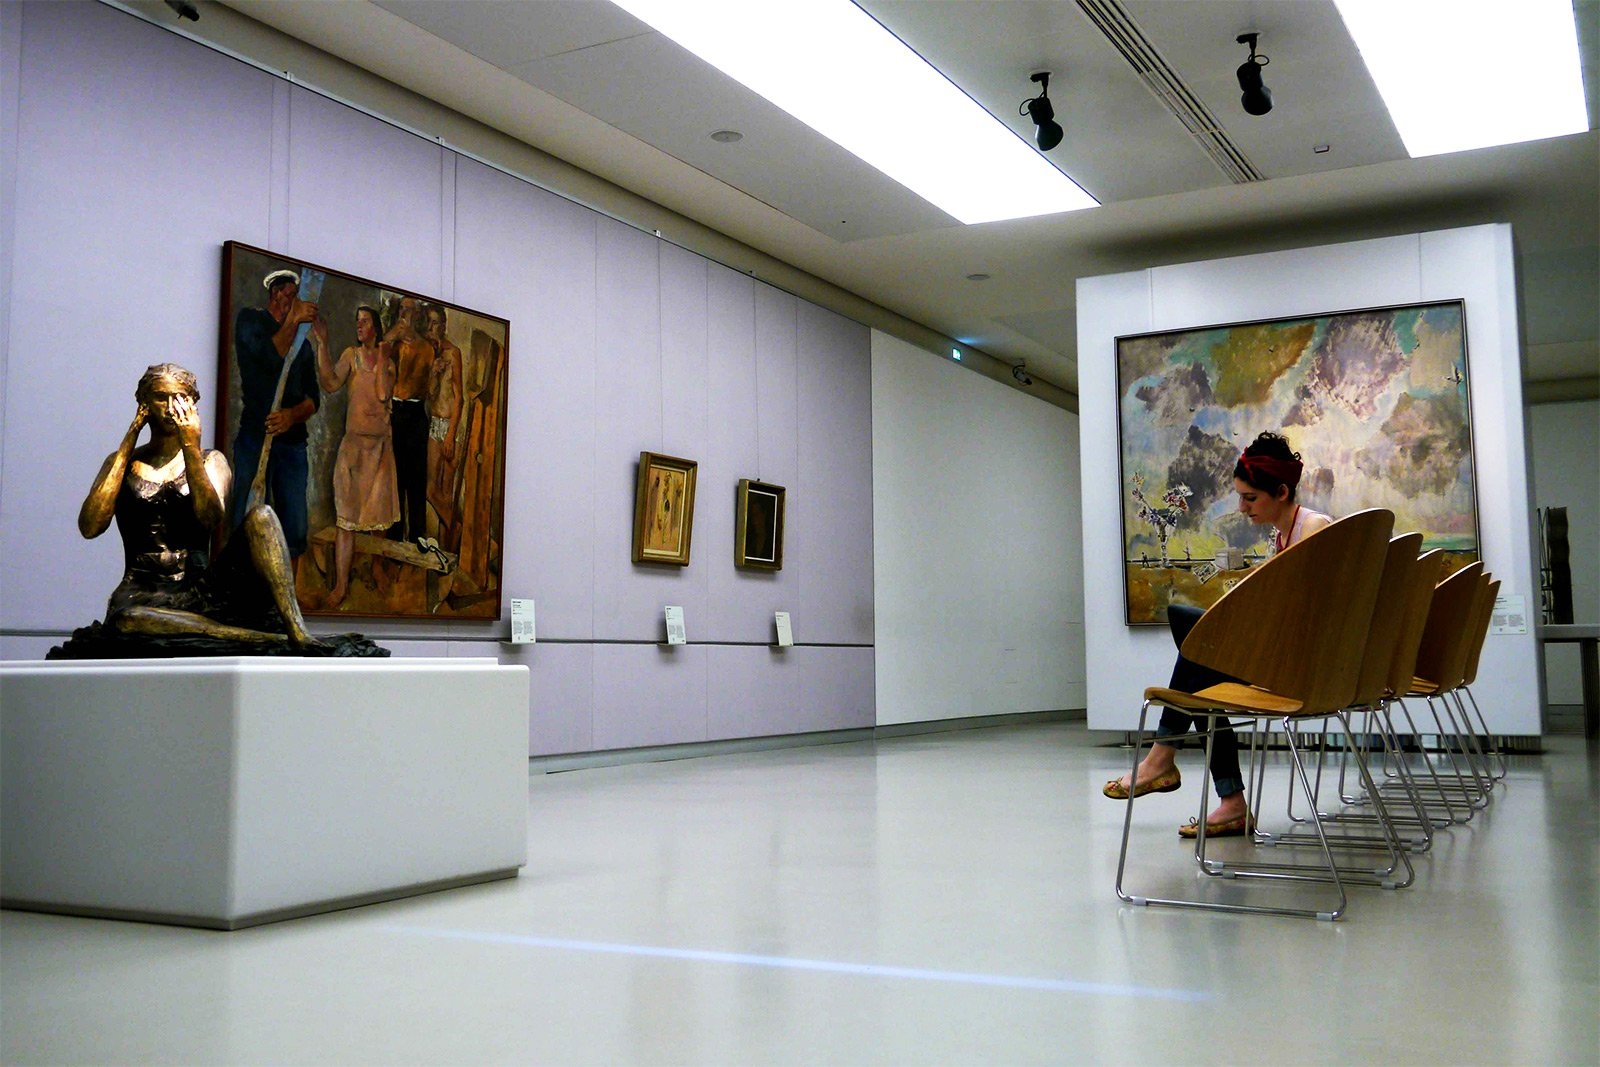 How to see masterpieces by Pablo Picasso and Modigliani in Milan